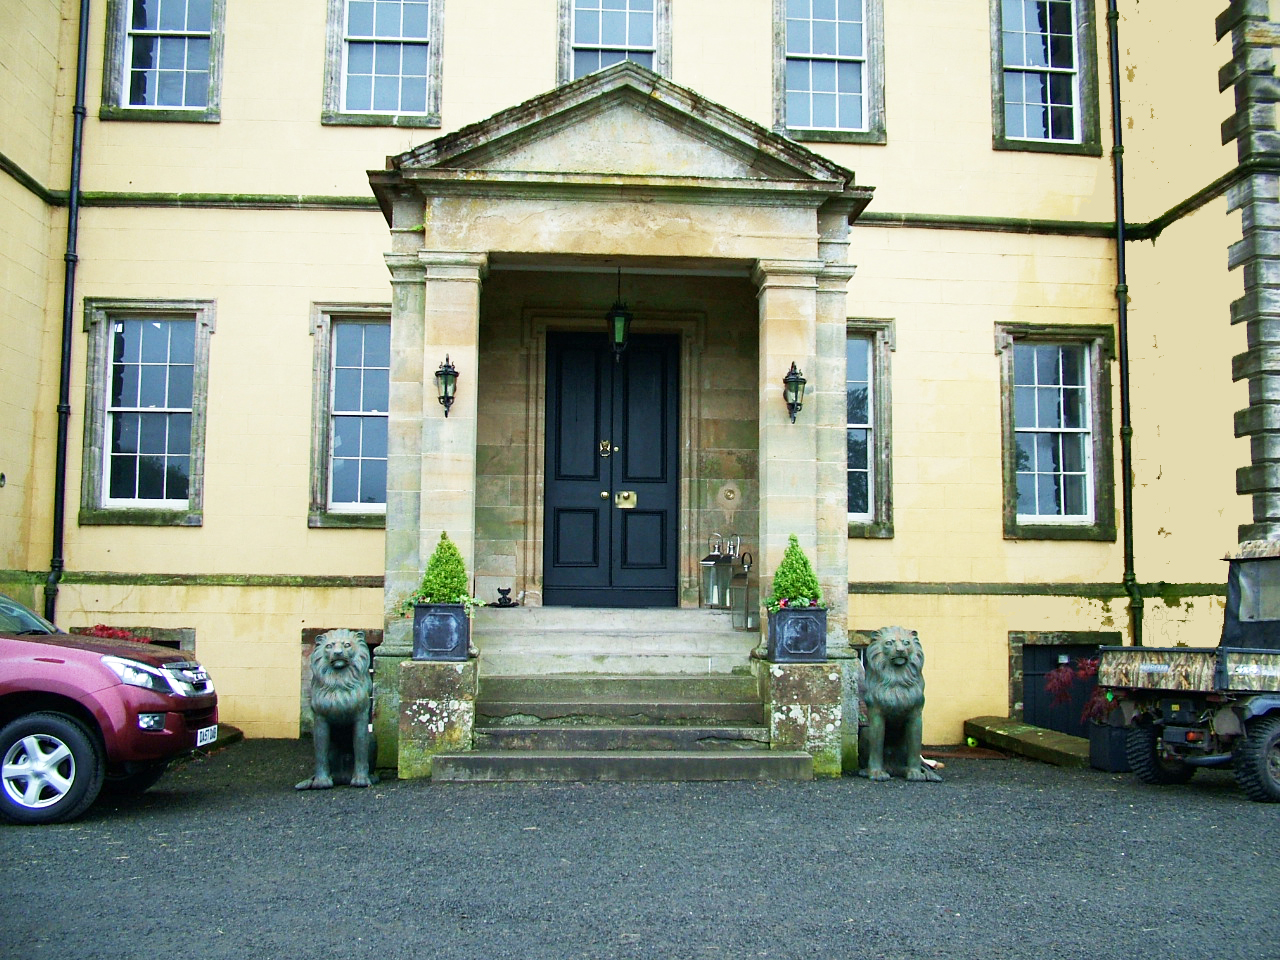 Melville House Entrance